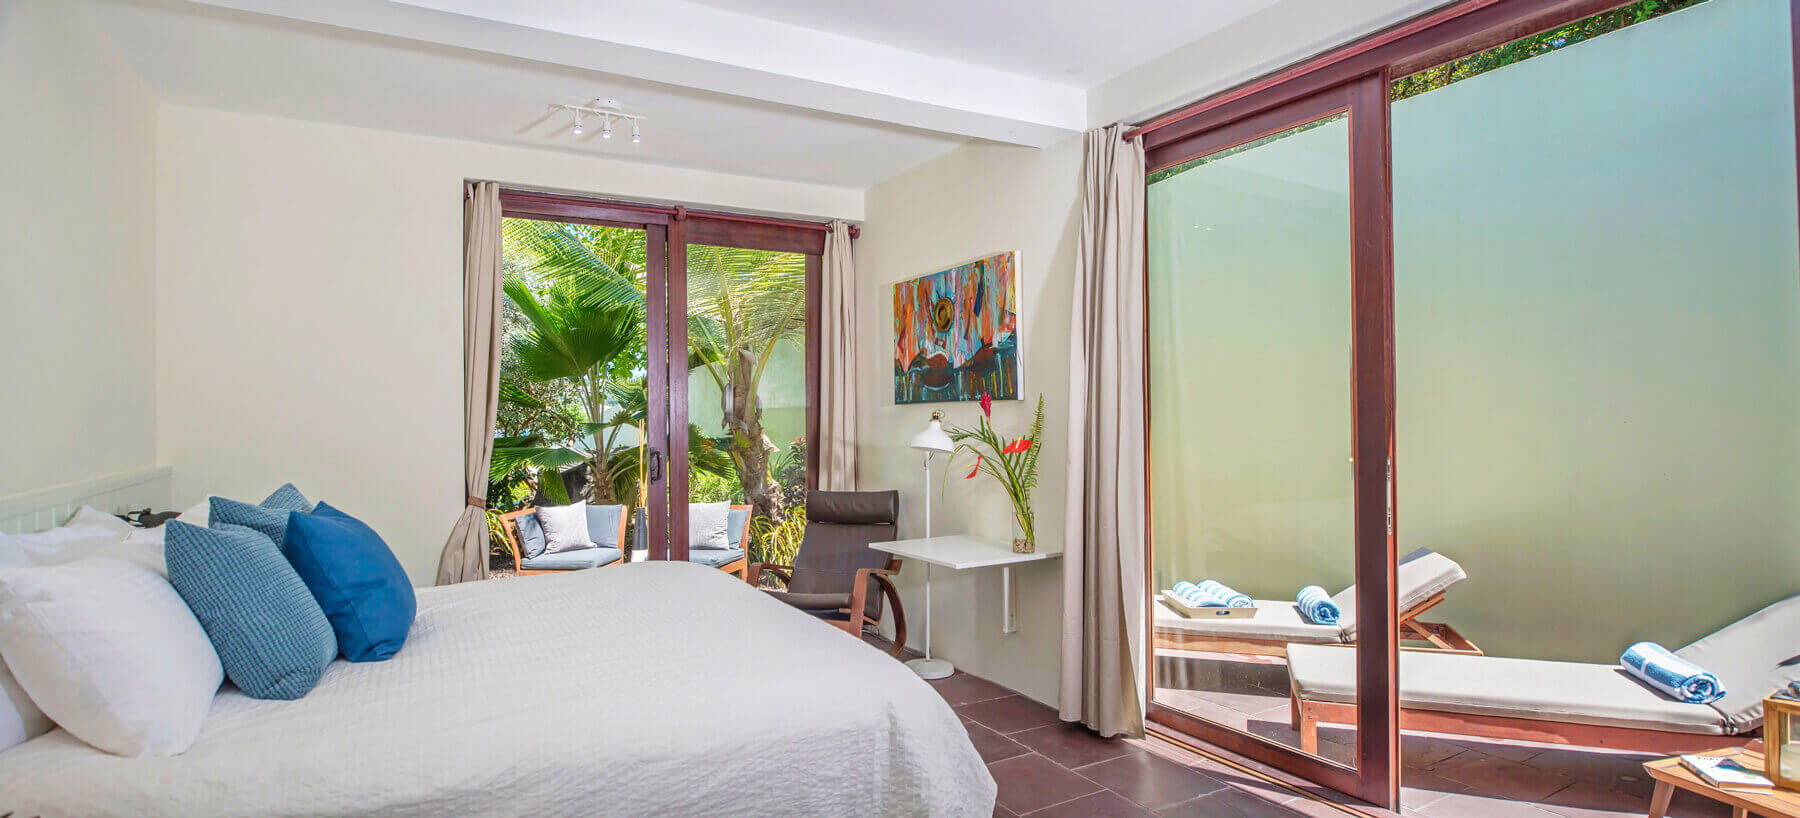 Bedroom sea view luxury villa